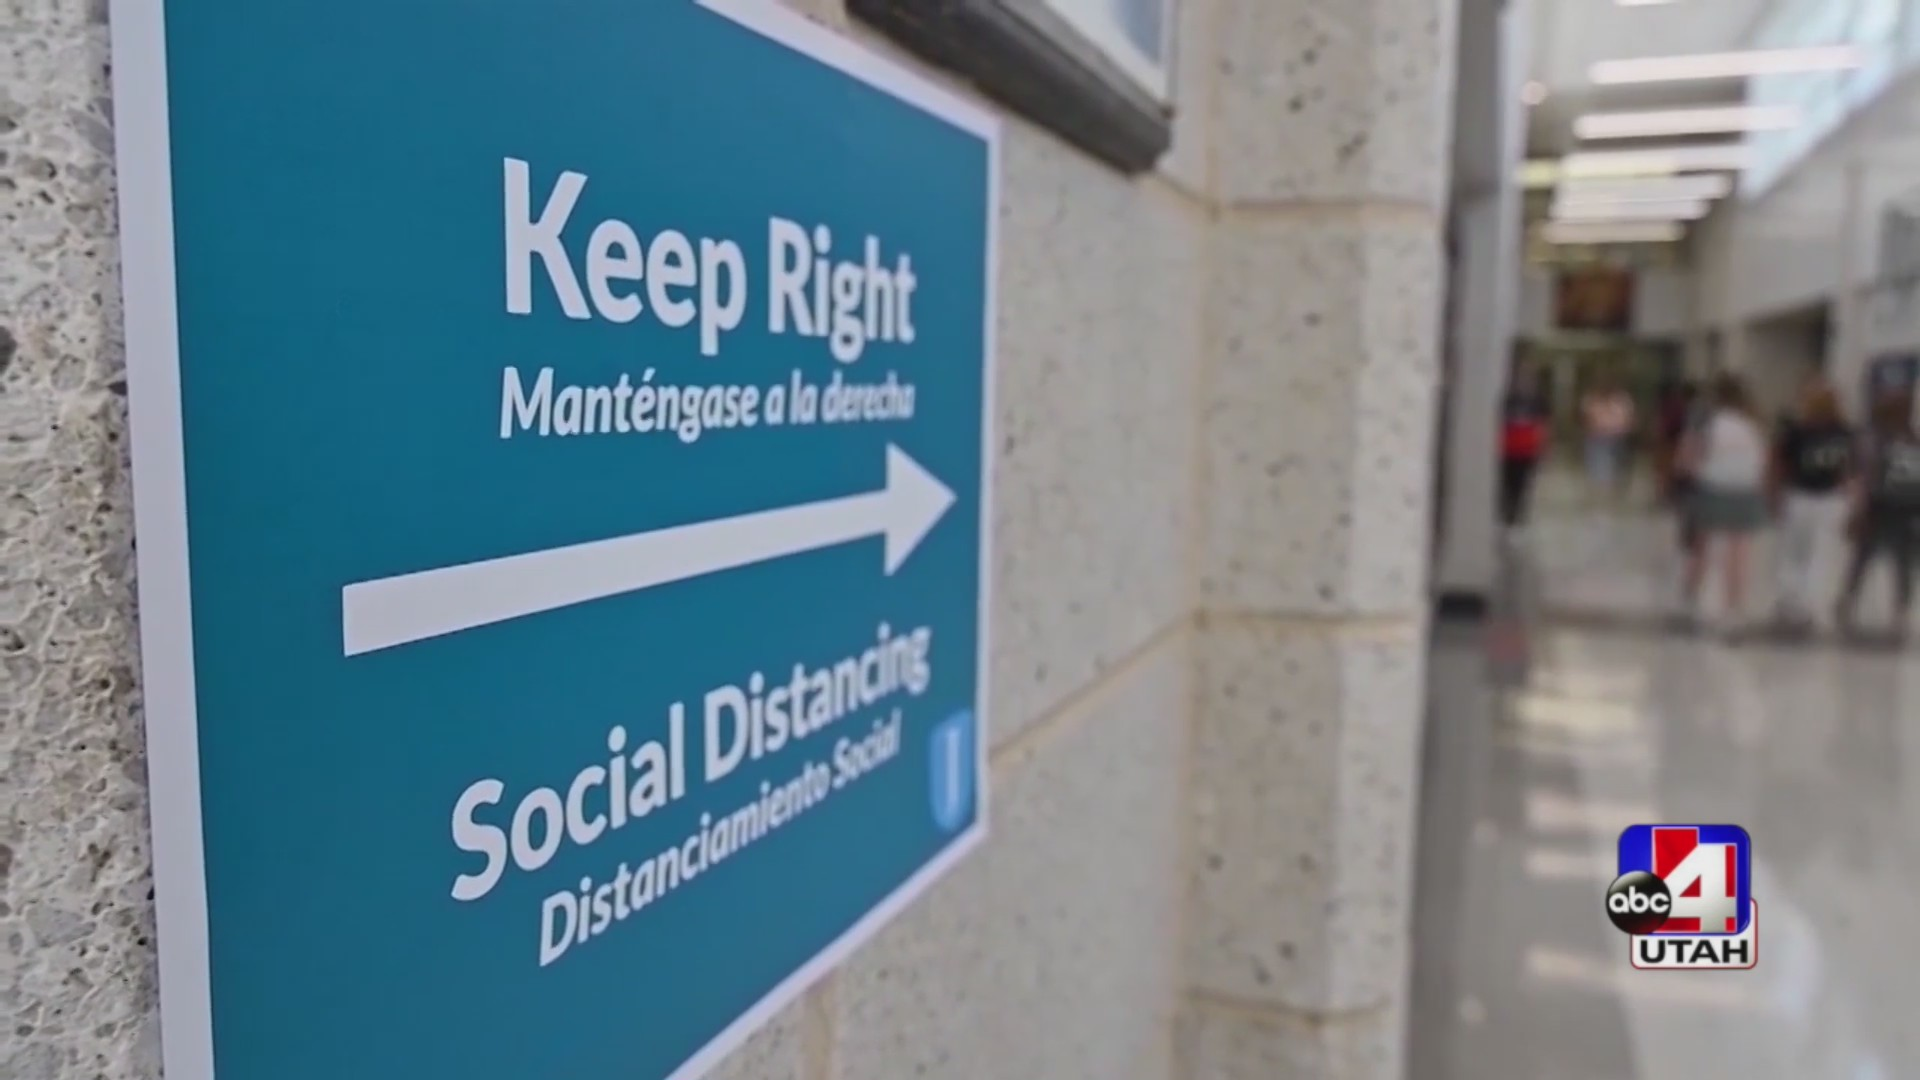 Safety sign for social distancing